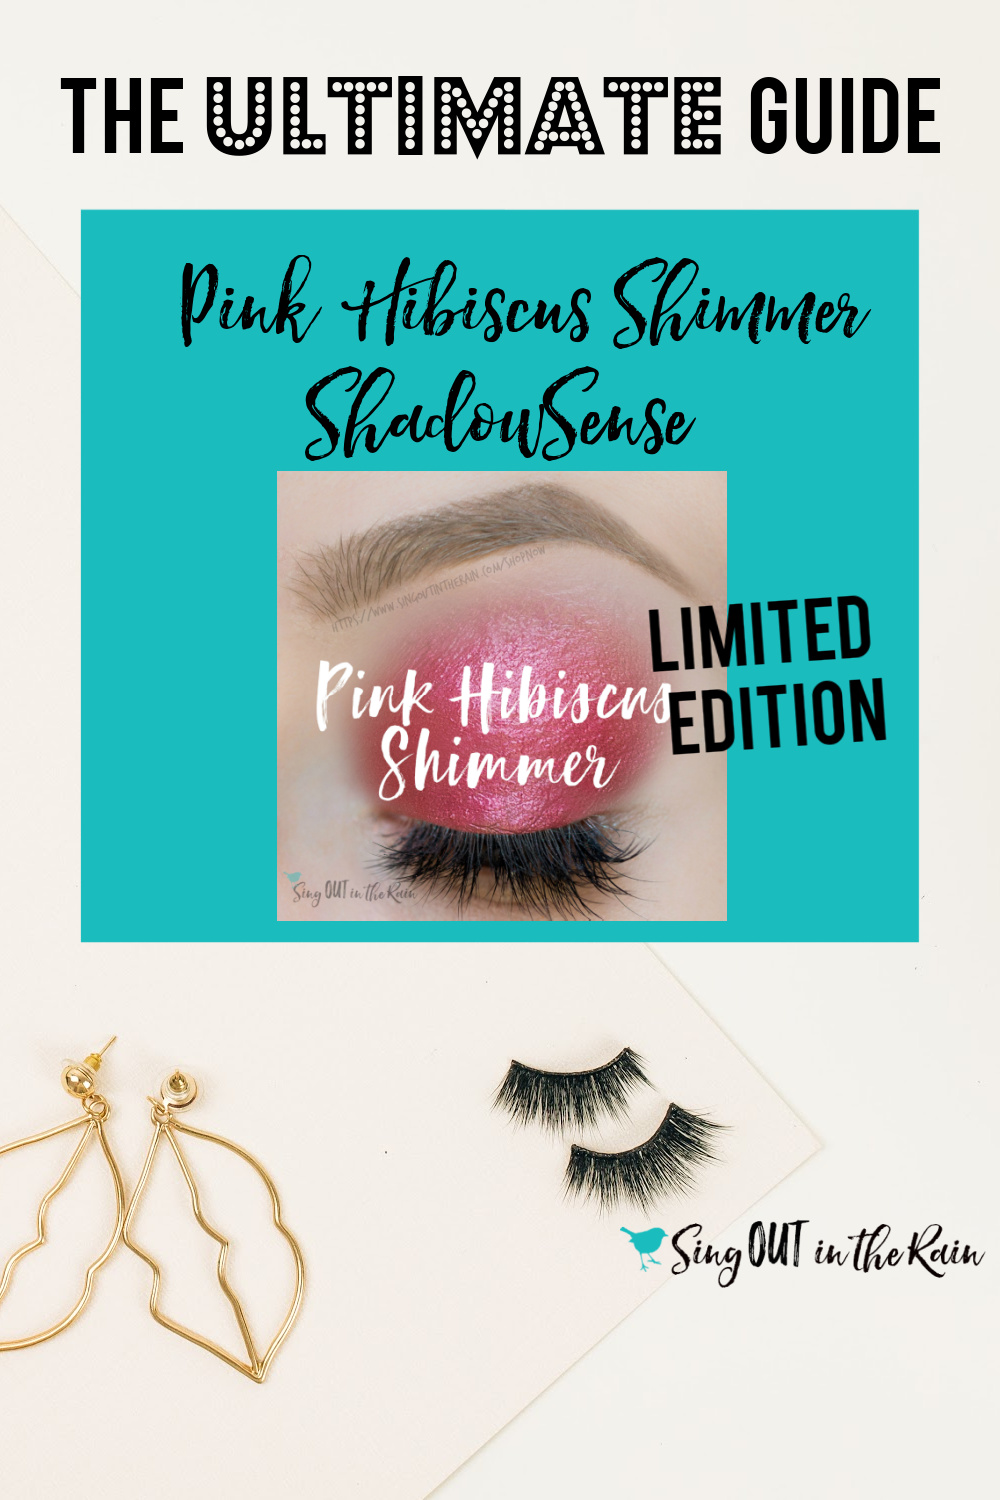 The Ultimate Guide to Pink Hibiscus Shimmer ShadowSense